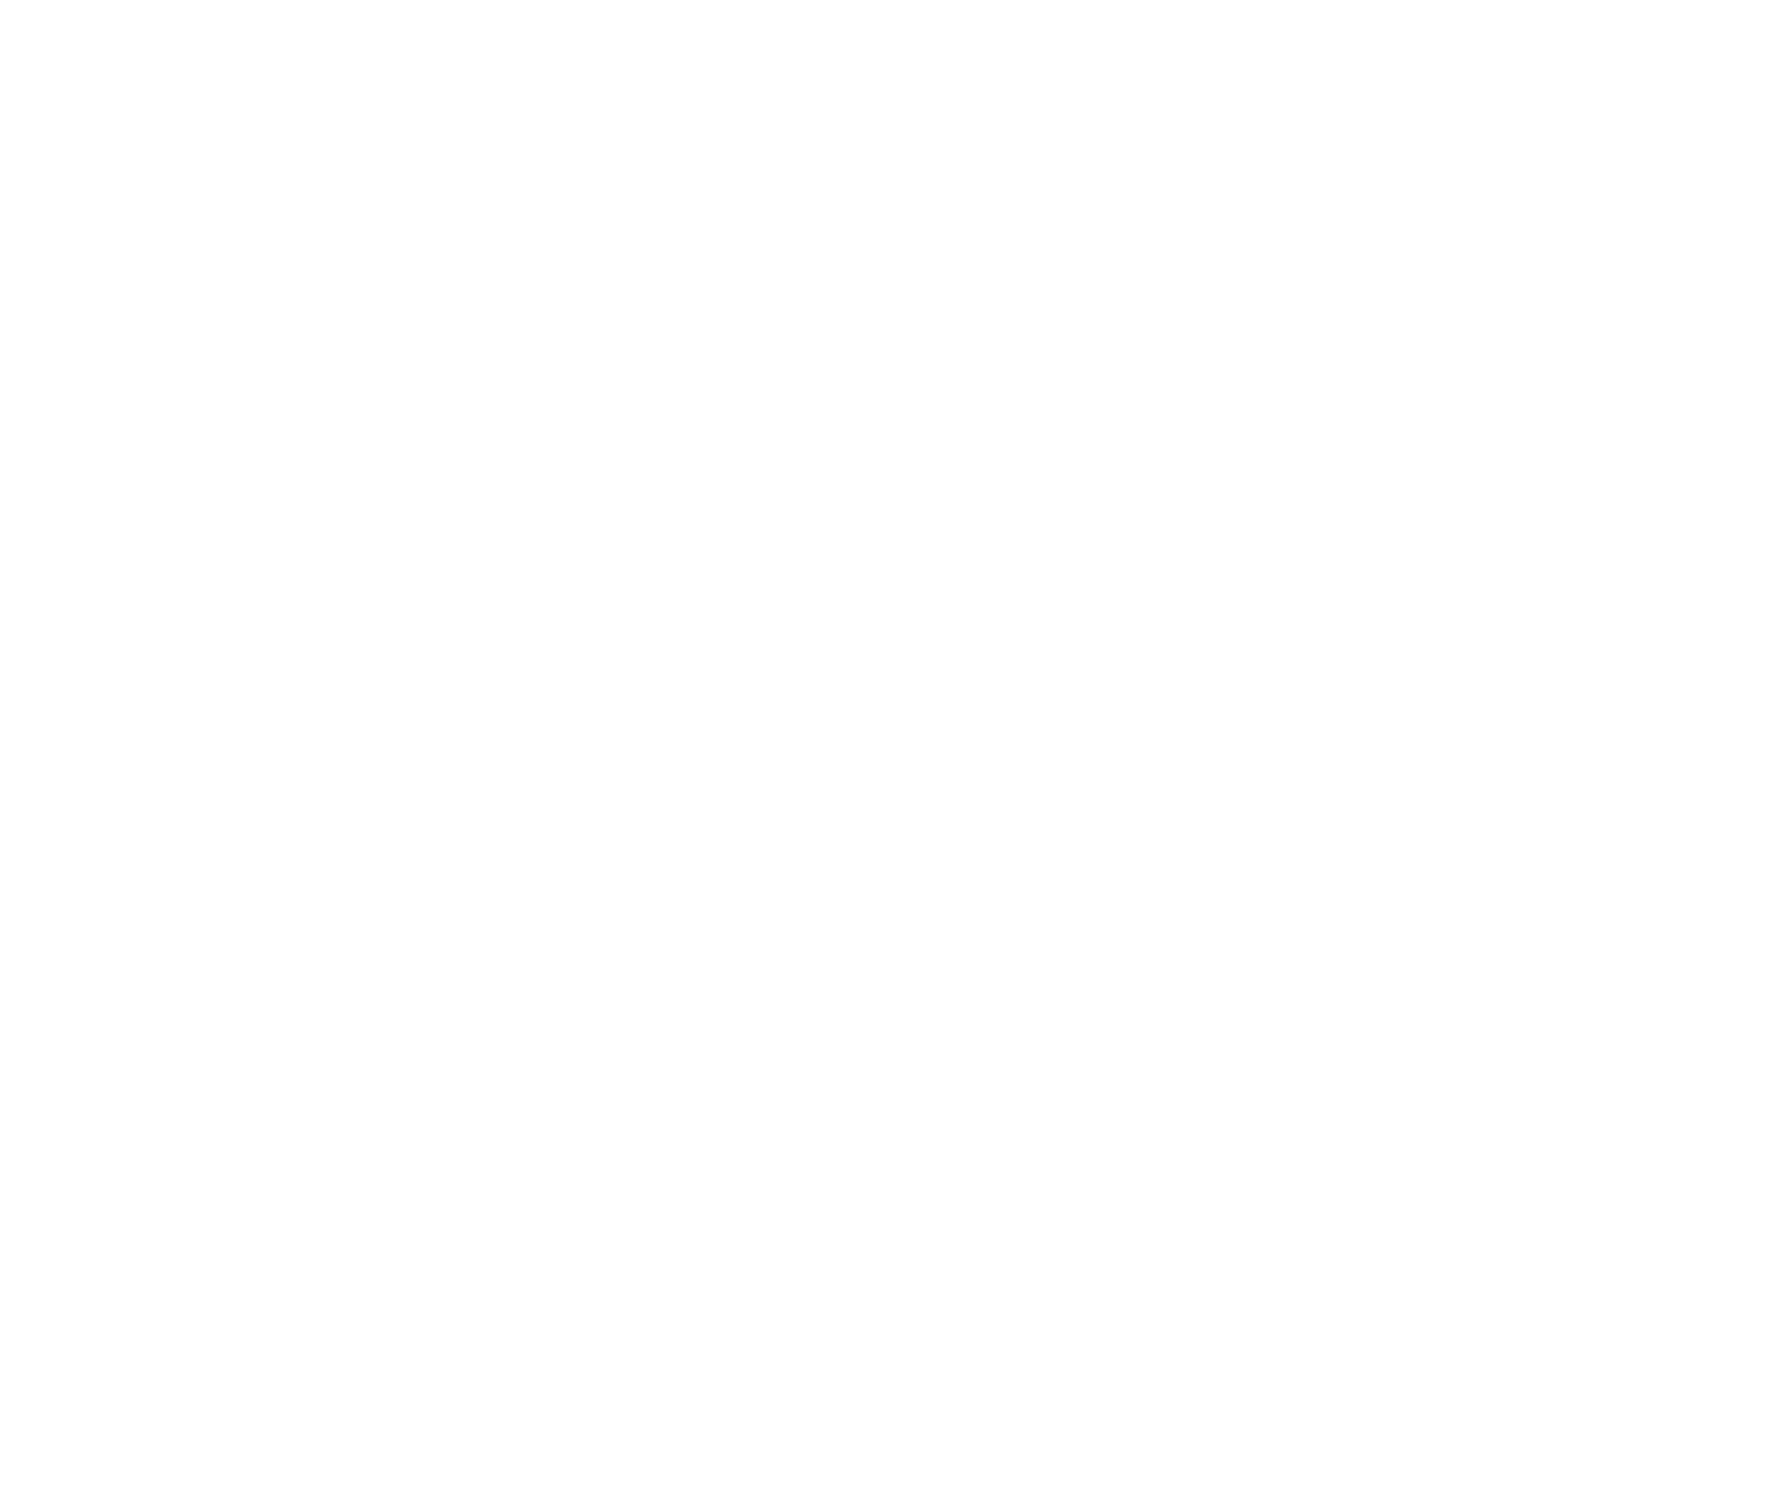 The Oaks at Four Corners